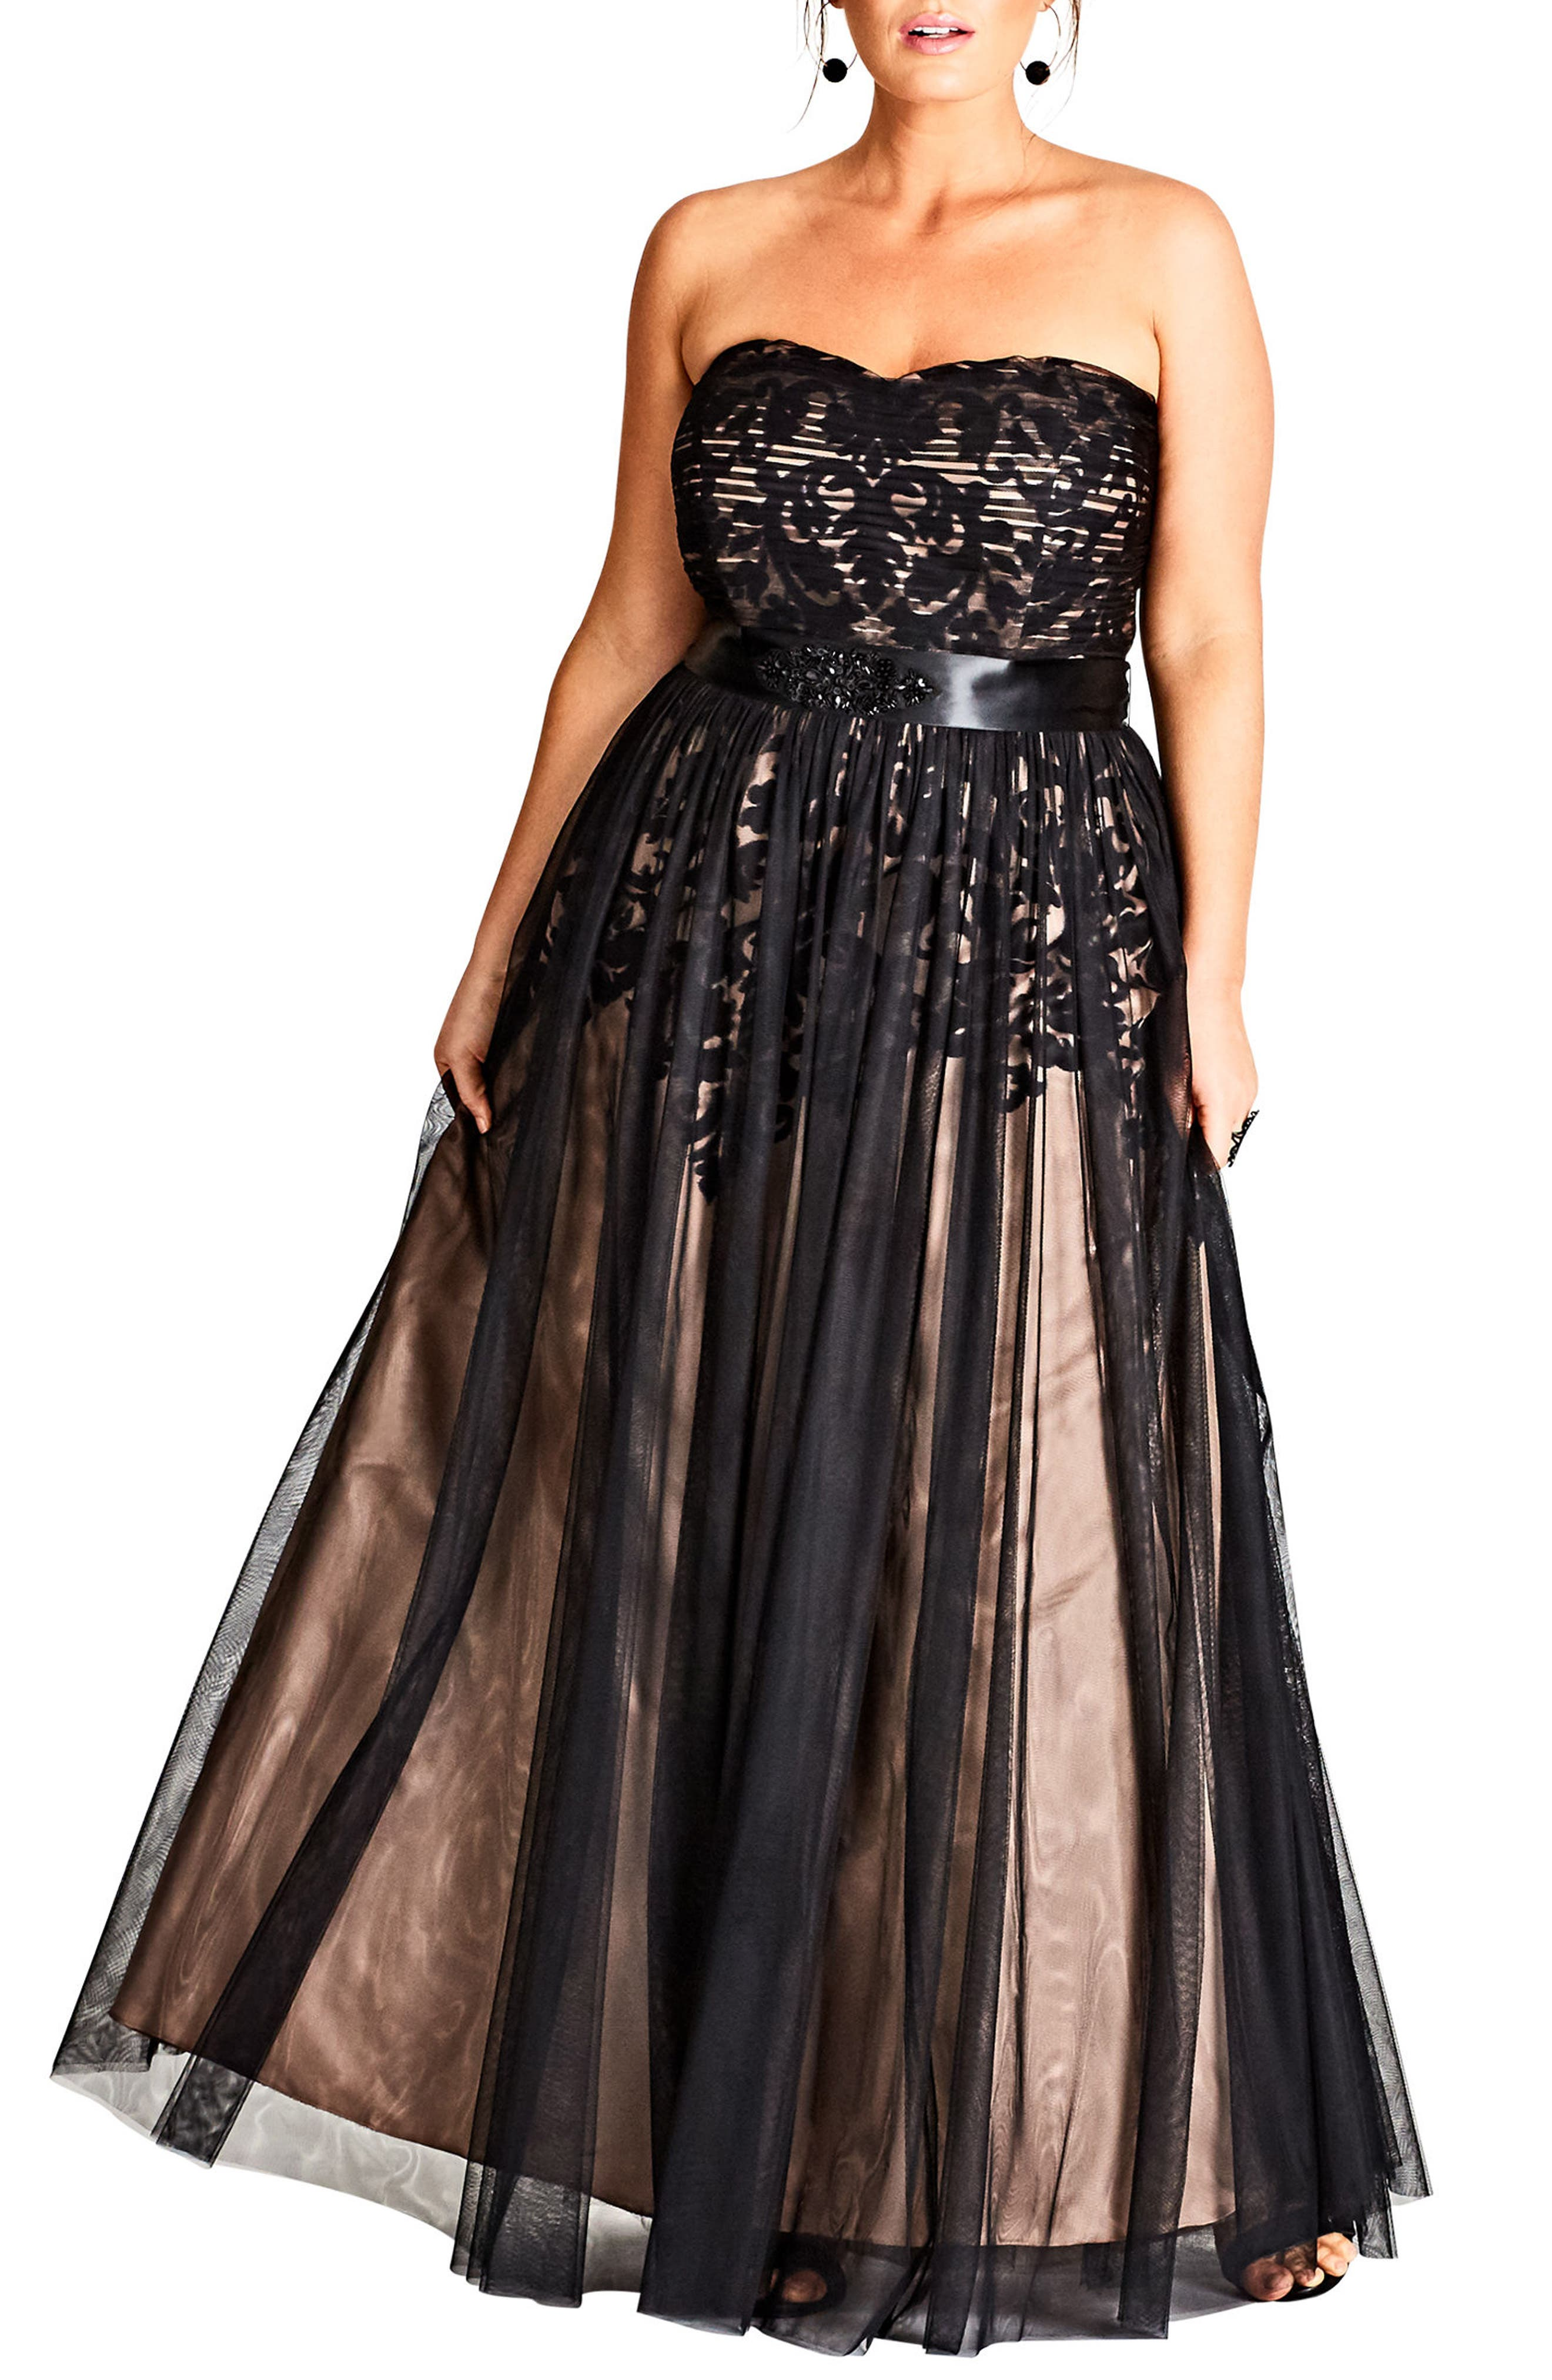 CITY CHIC, Embellished Tulle Strapless Ballgown, Main thumbnail 1, color, BLACK